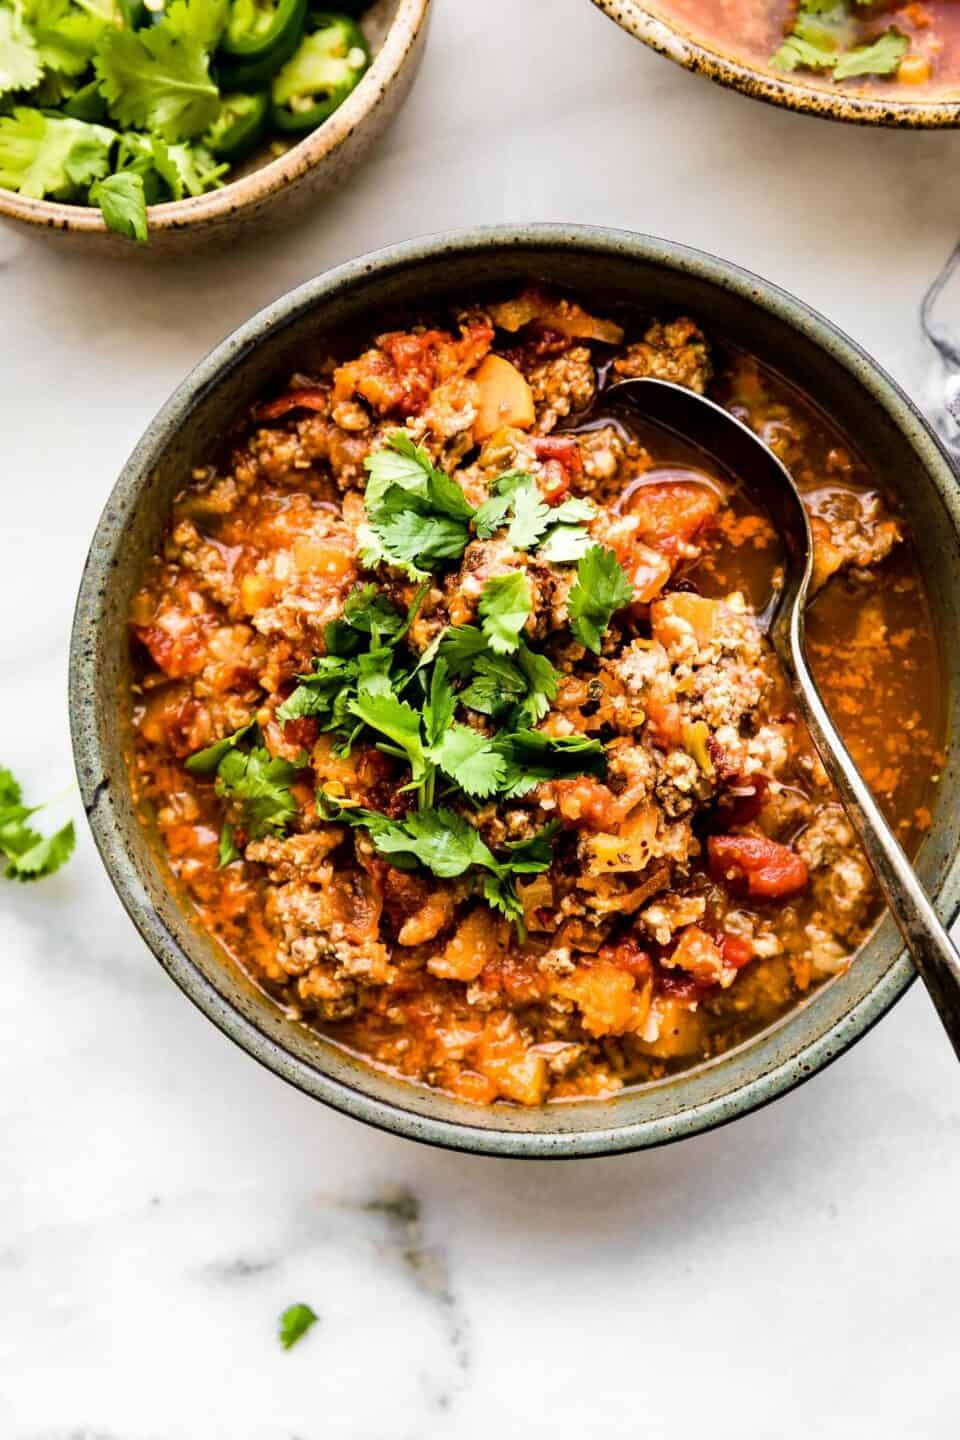 21 Healthy Slow Cooker Recipes to Make this Week